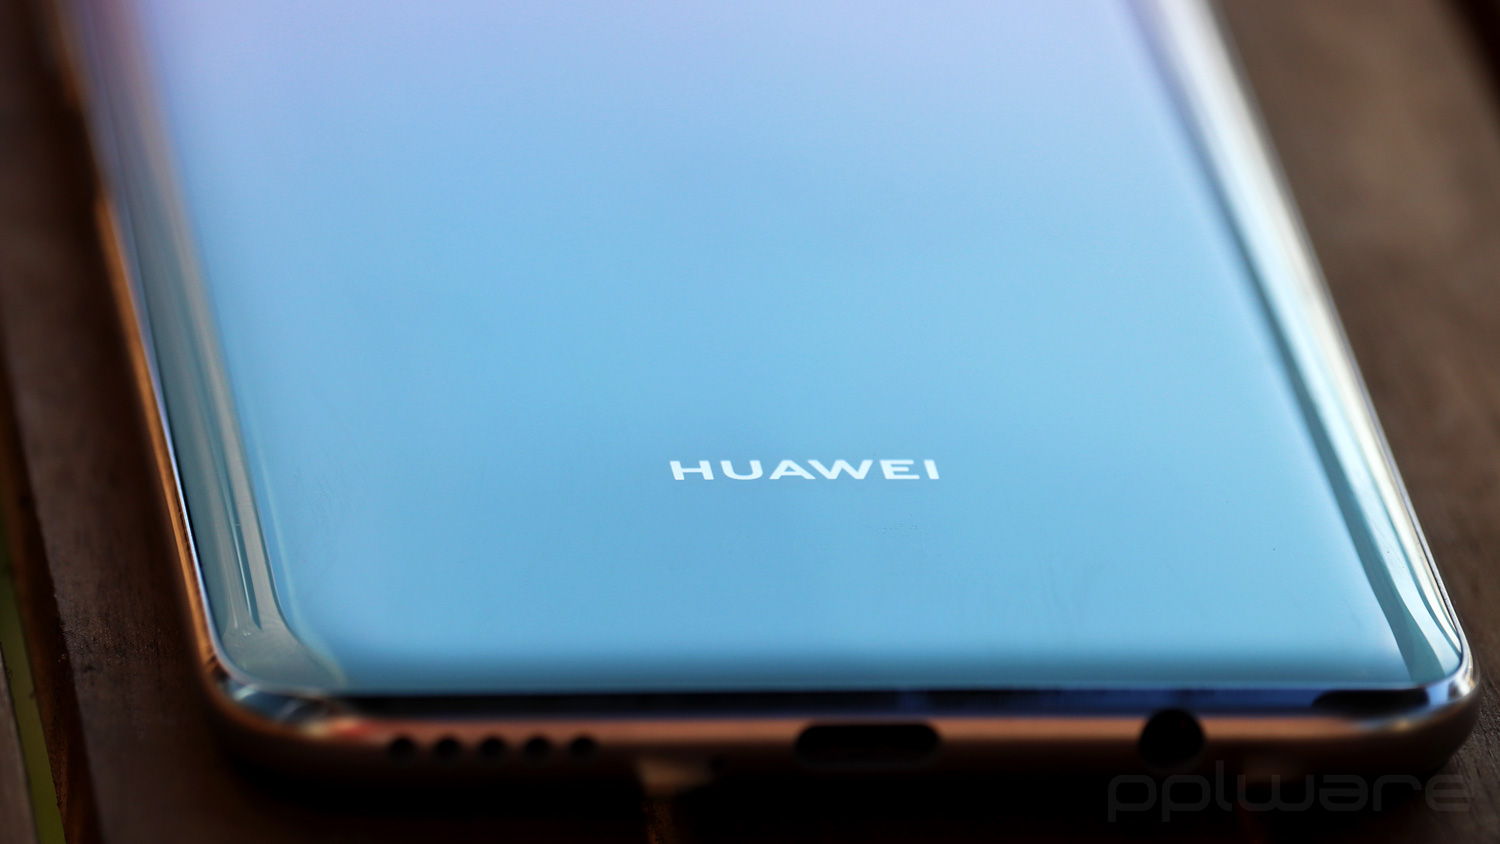 Huawei's smartphones end of warranty with extended term due to Covid-19